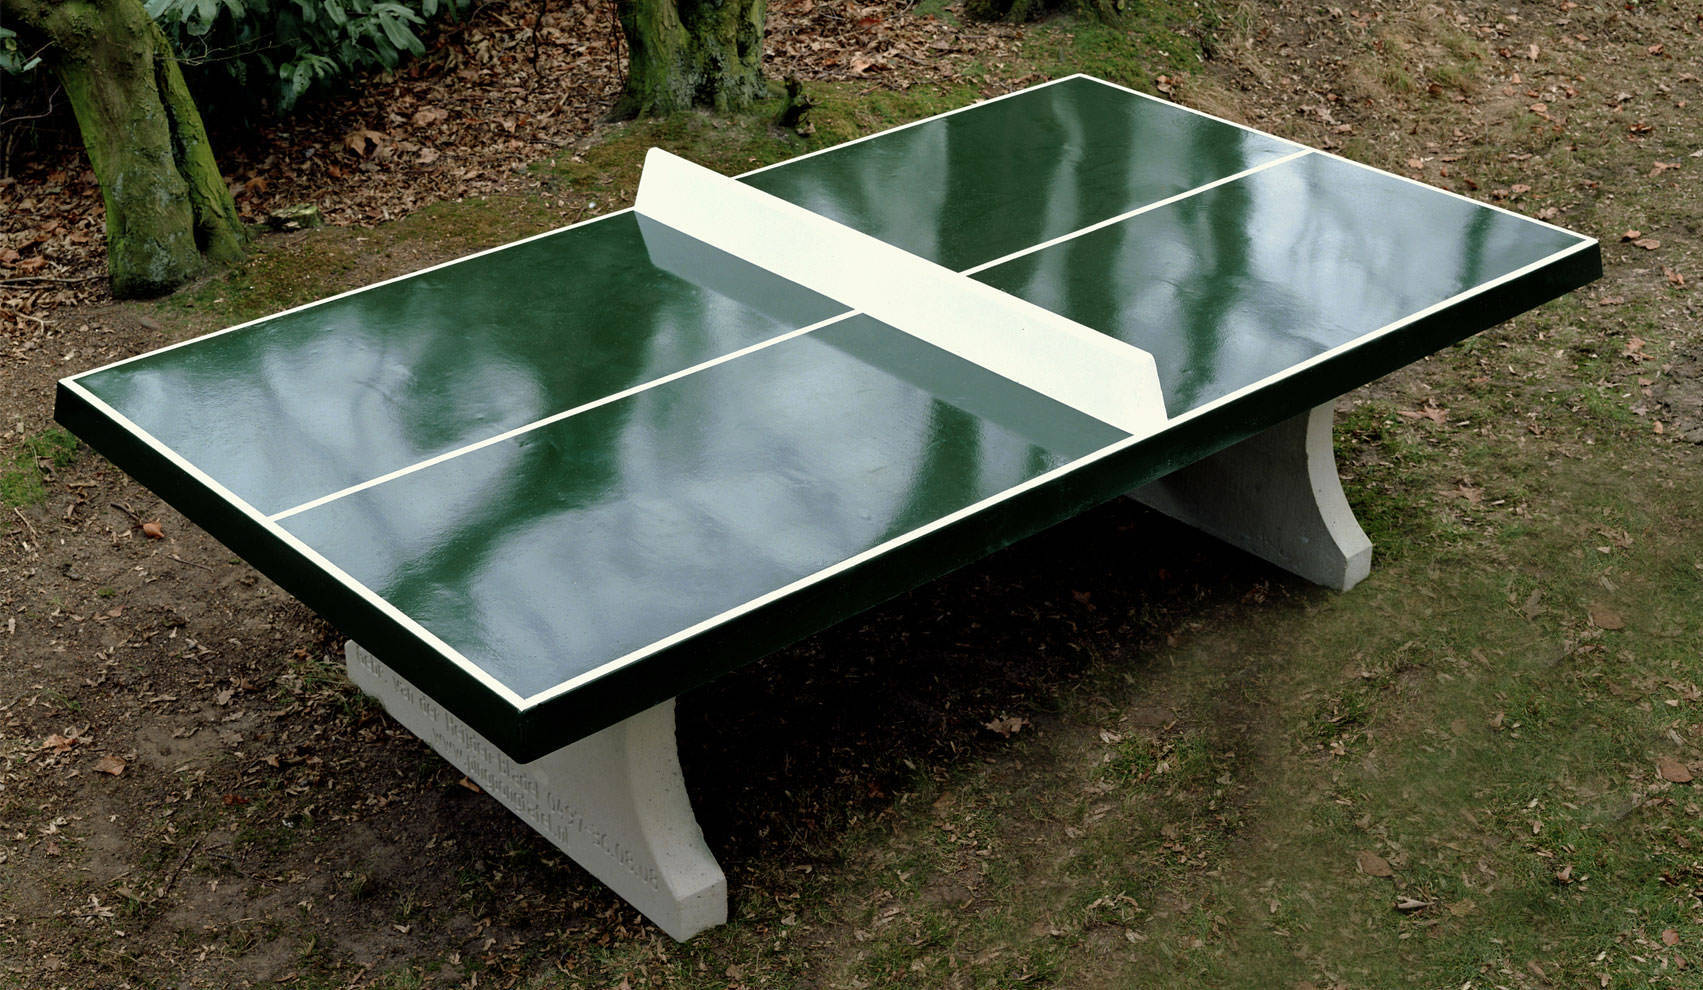 Table Tennis De Table Exterieur Tischtennisplatte Aus Beton Eckig Outdoor Kickerkult